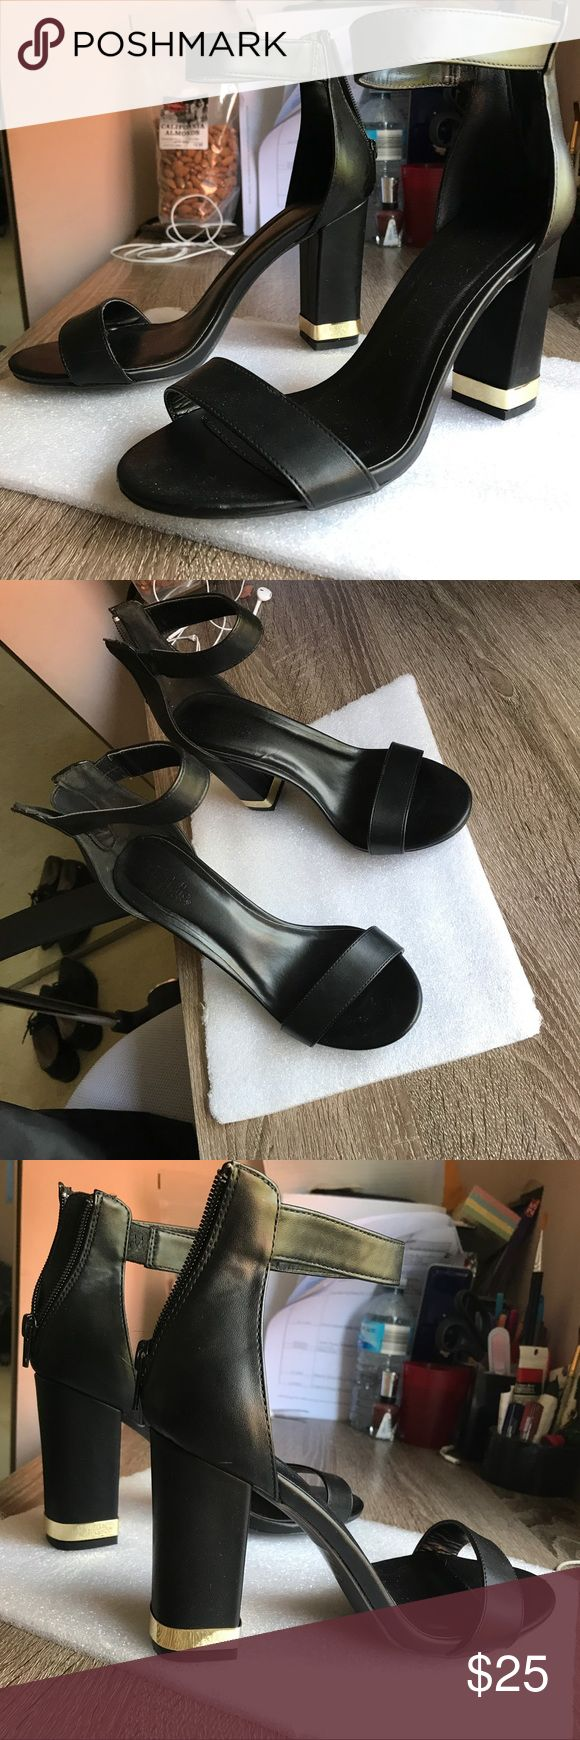 Black Charlotte Russe Heels with gold accents. Black Heels with gold accents in a size 8 (Women). Worn once ( for 4 hours only to be specific). Charlotte Russe Shoes Heels